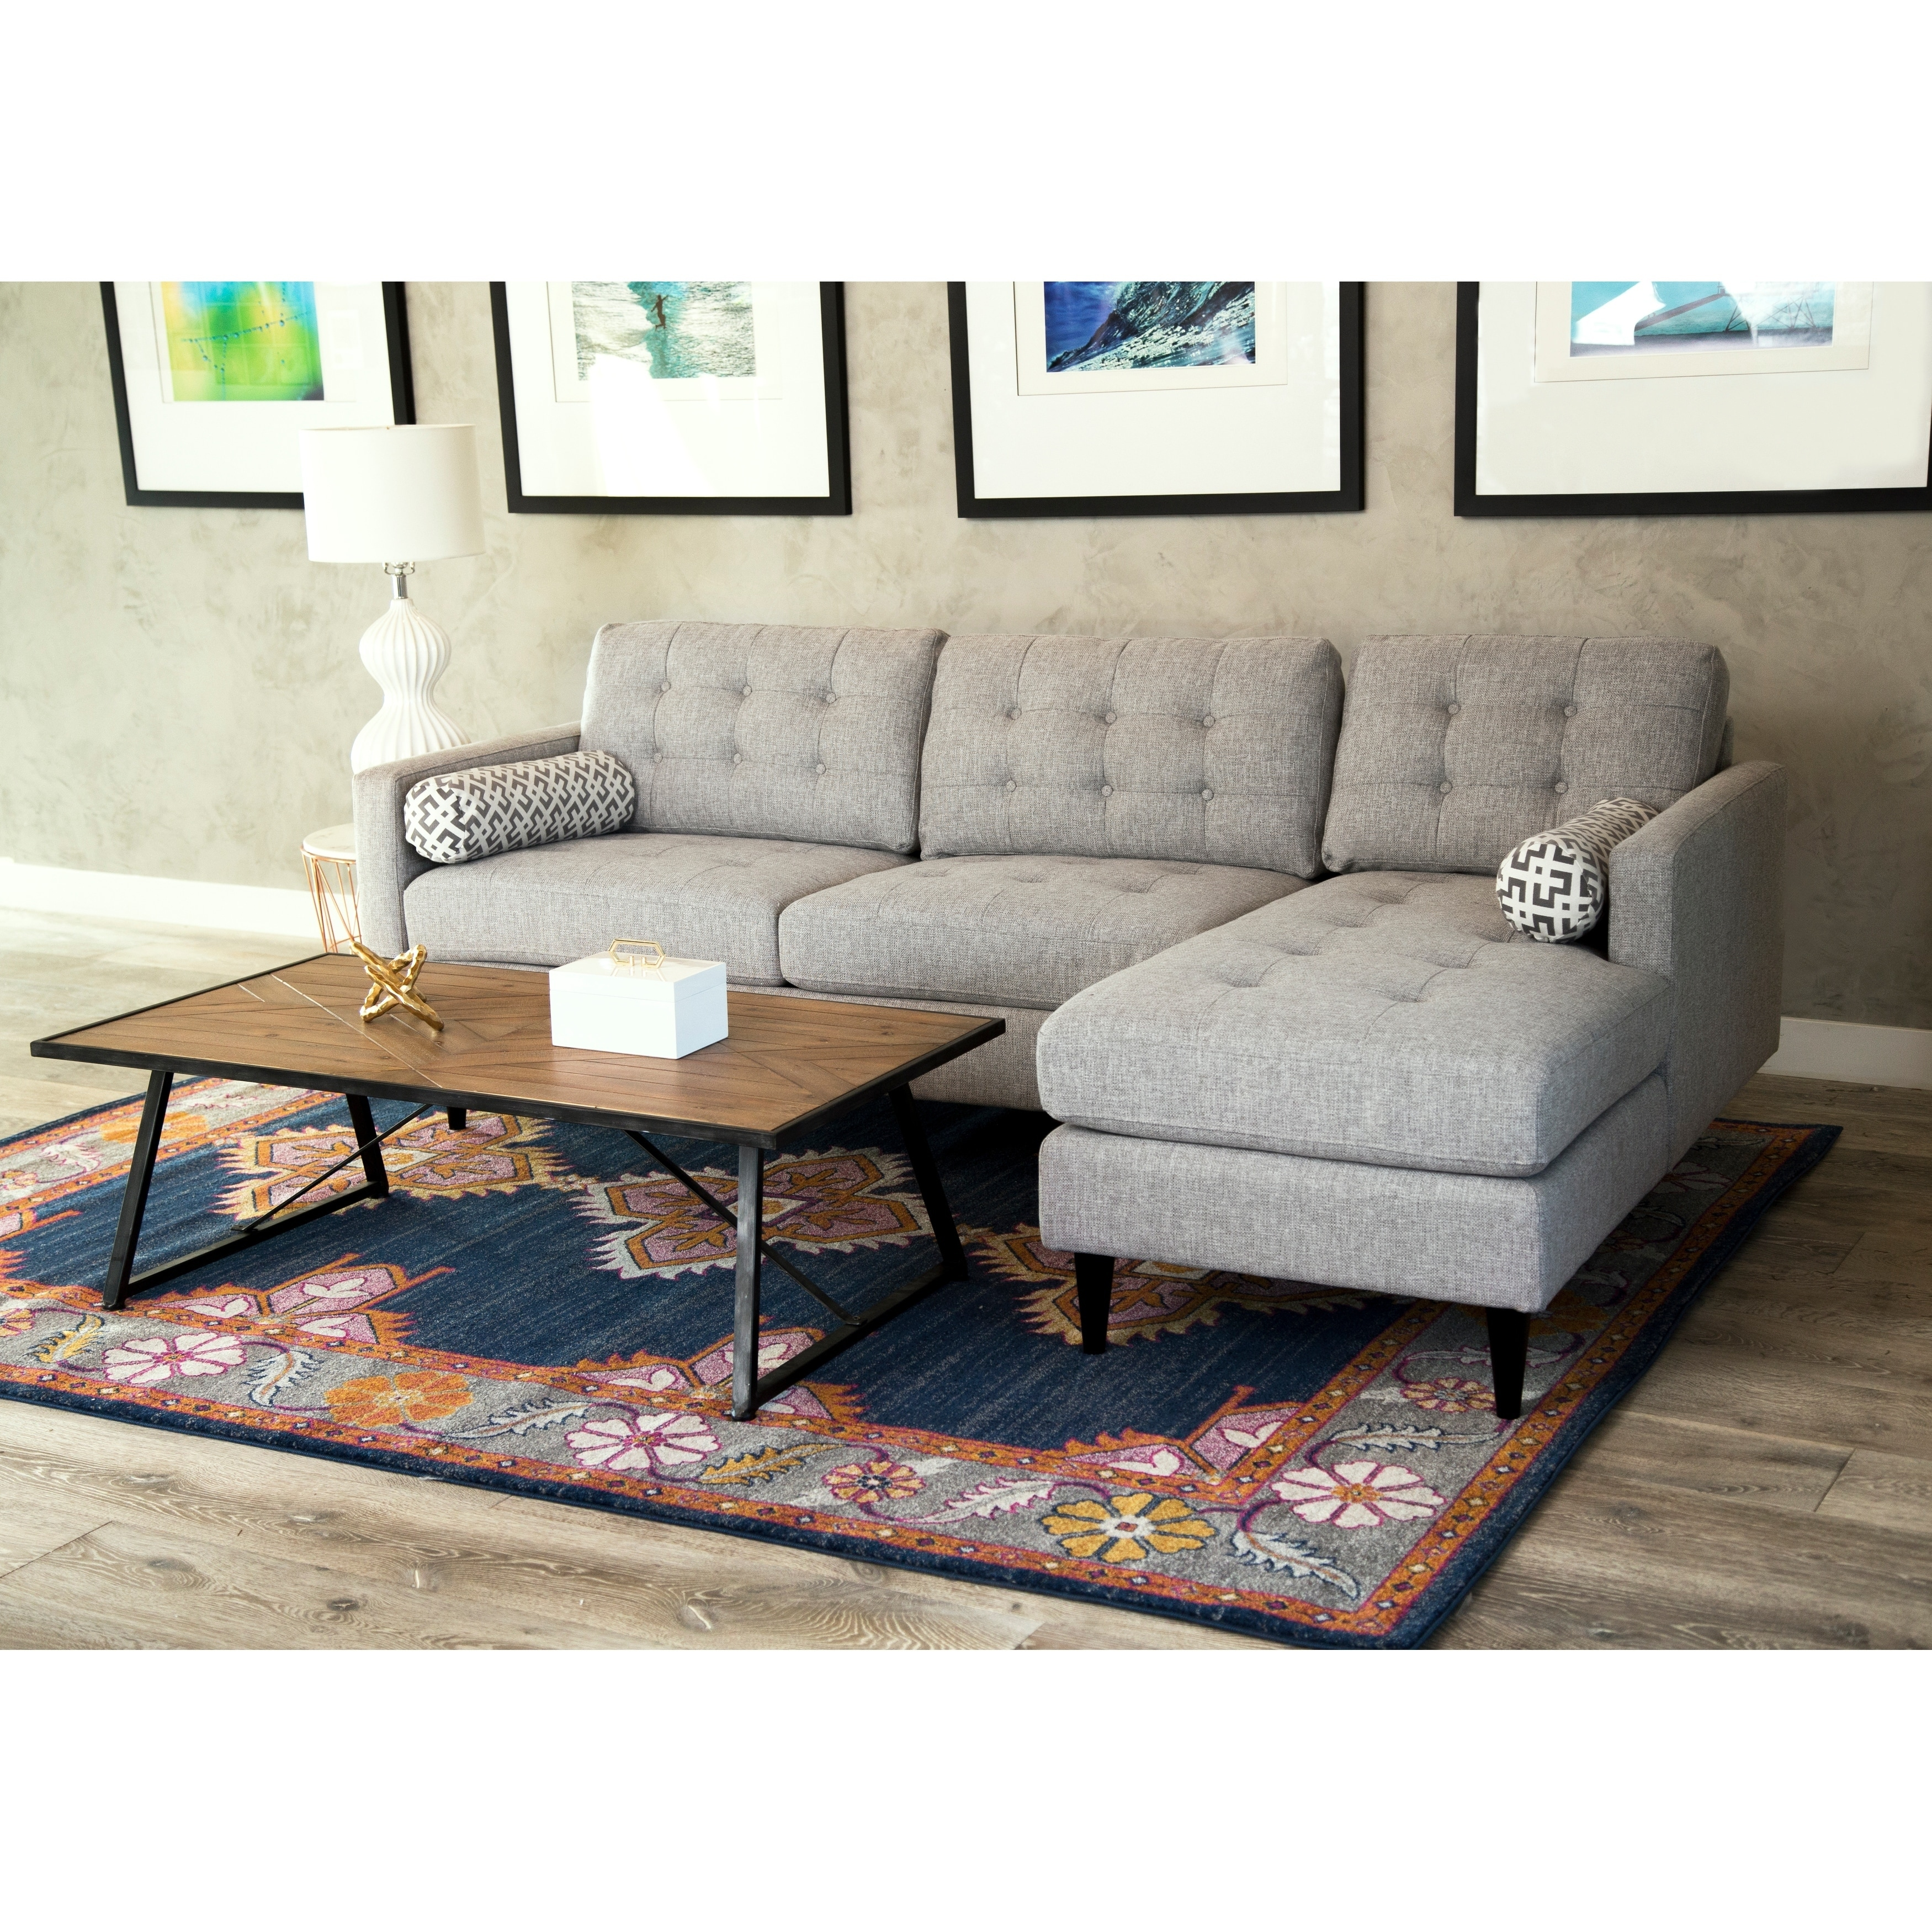 Abbyson aiden grey mid century tufted sectional